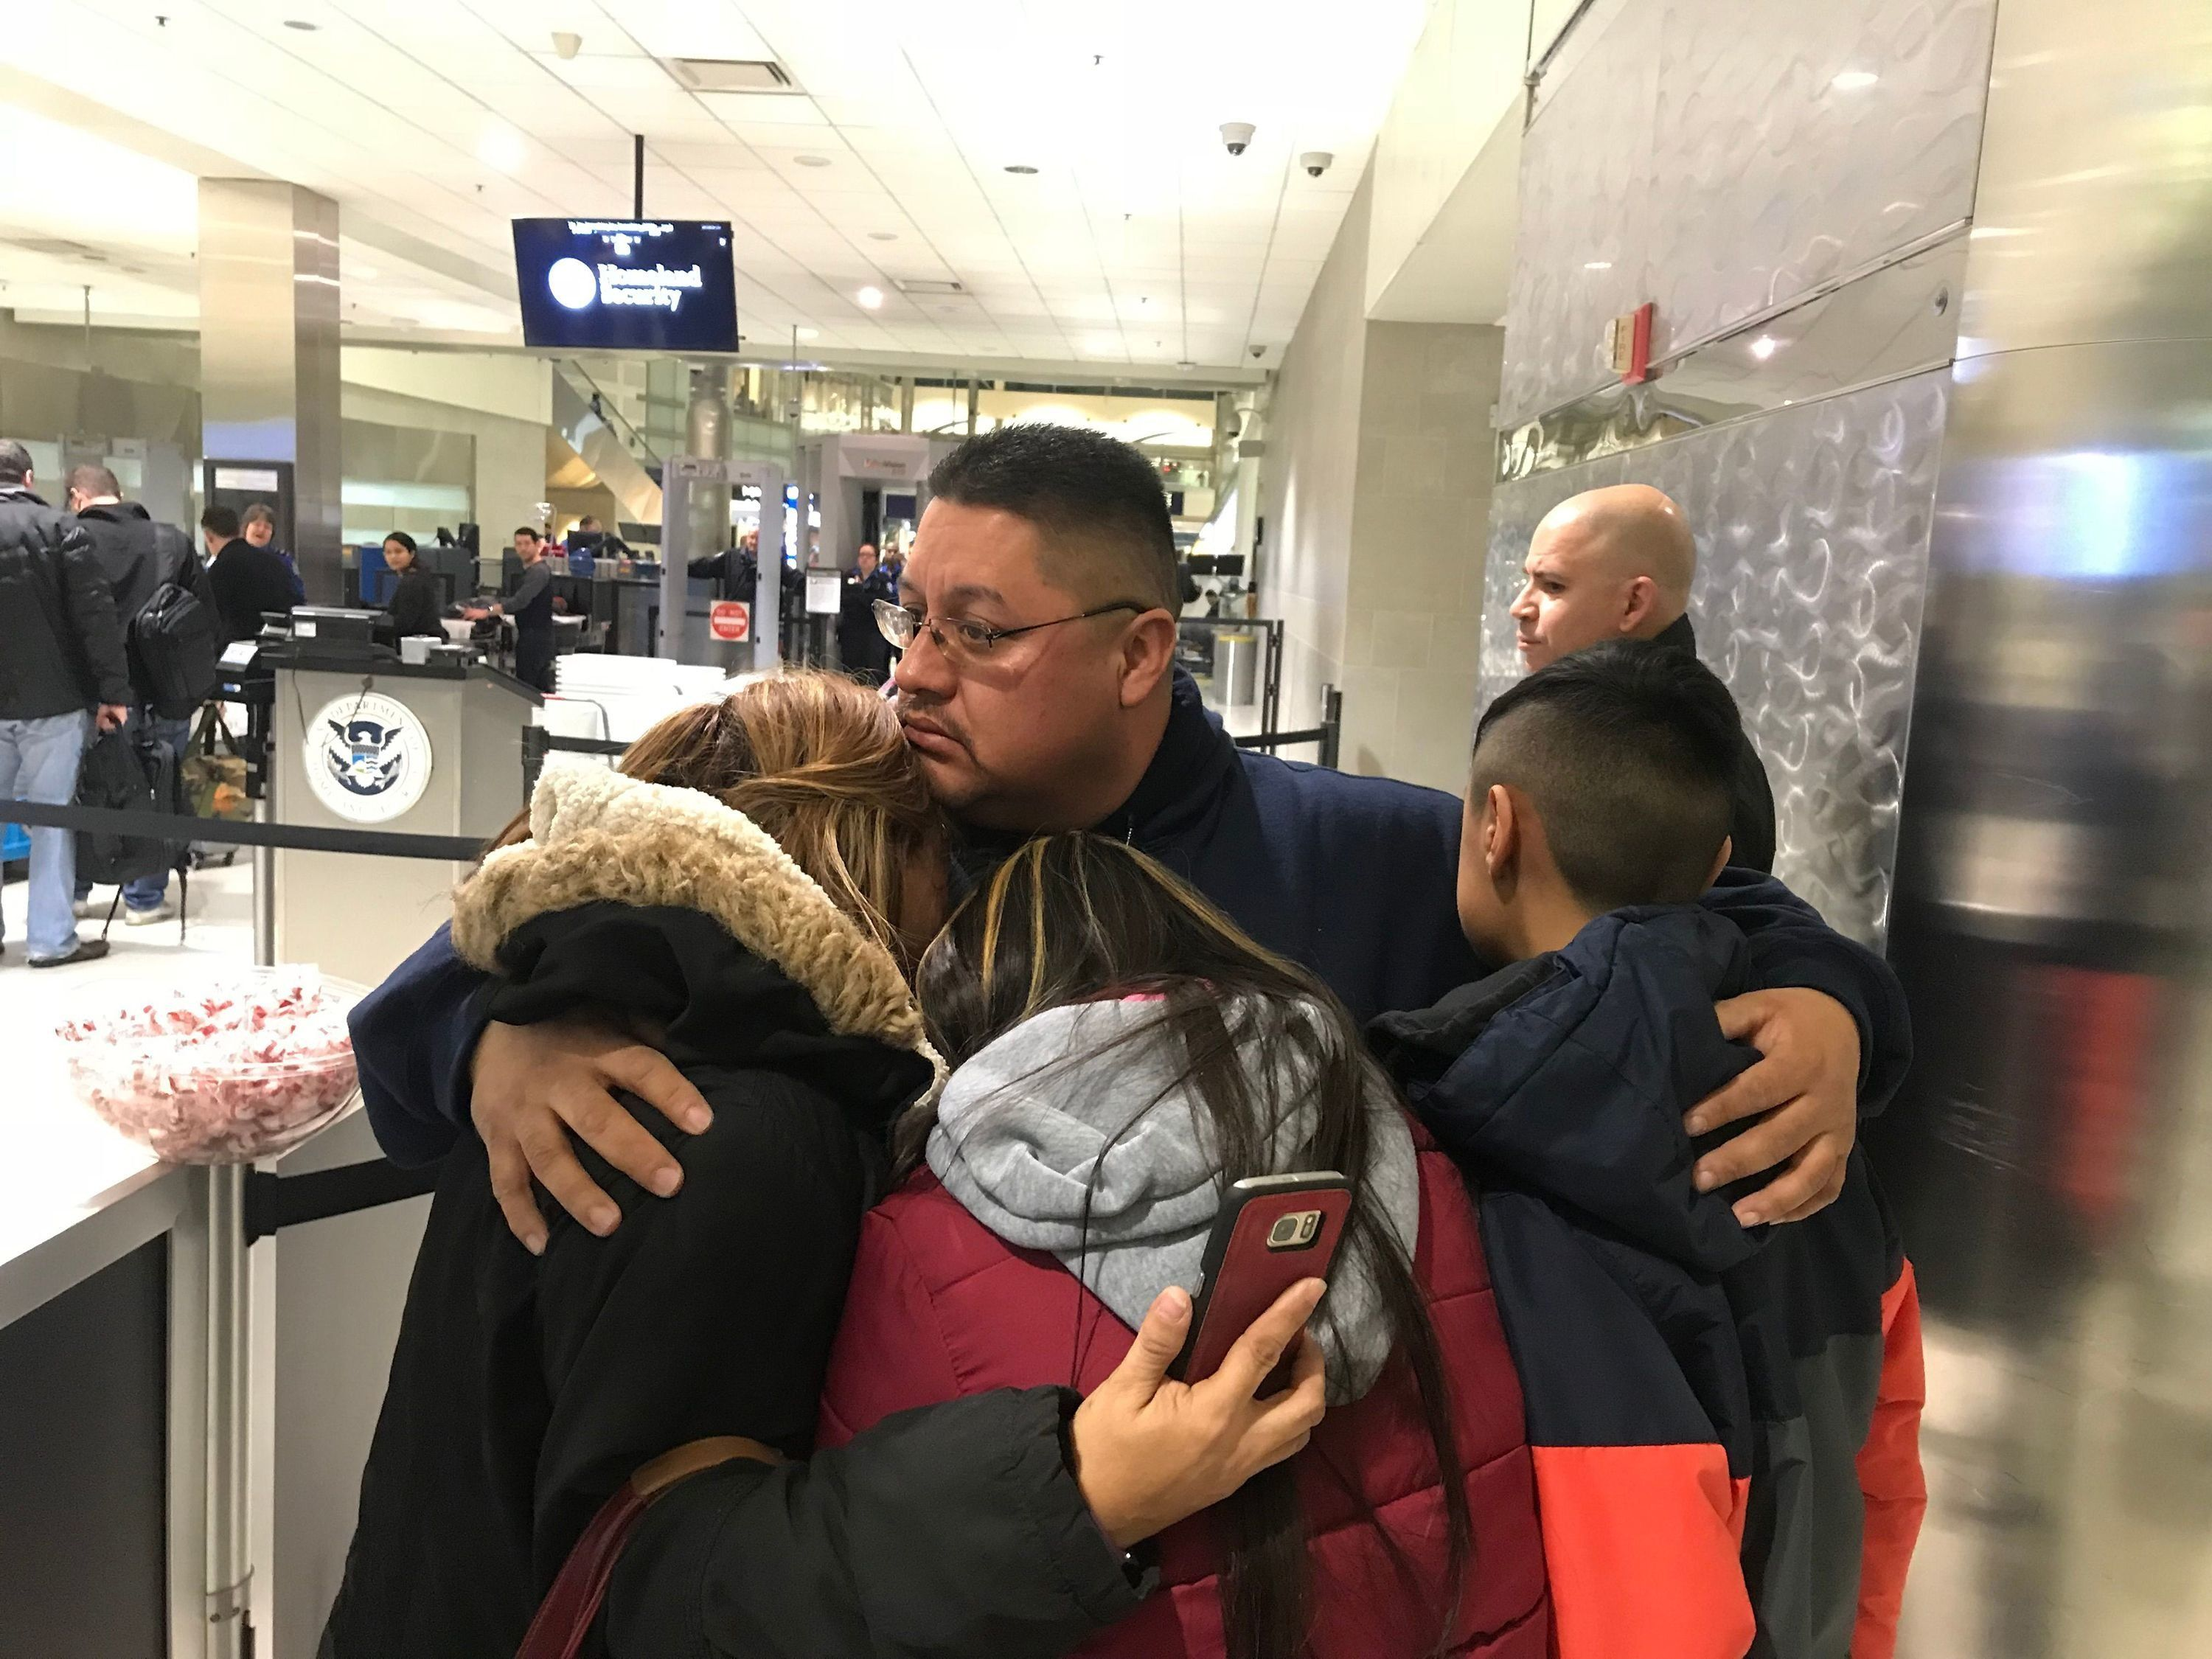 Jorge Garcia, 39, of Lincoln Park, Mich., hugs his wife, Cindy Garcia, and their two children Jan. 15, 2018, at Detroit Metro Airport moments before being forced to board a flight to Mexico to be deported.